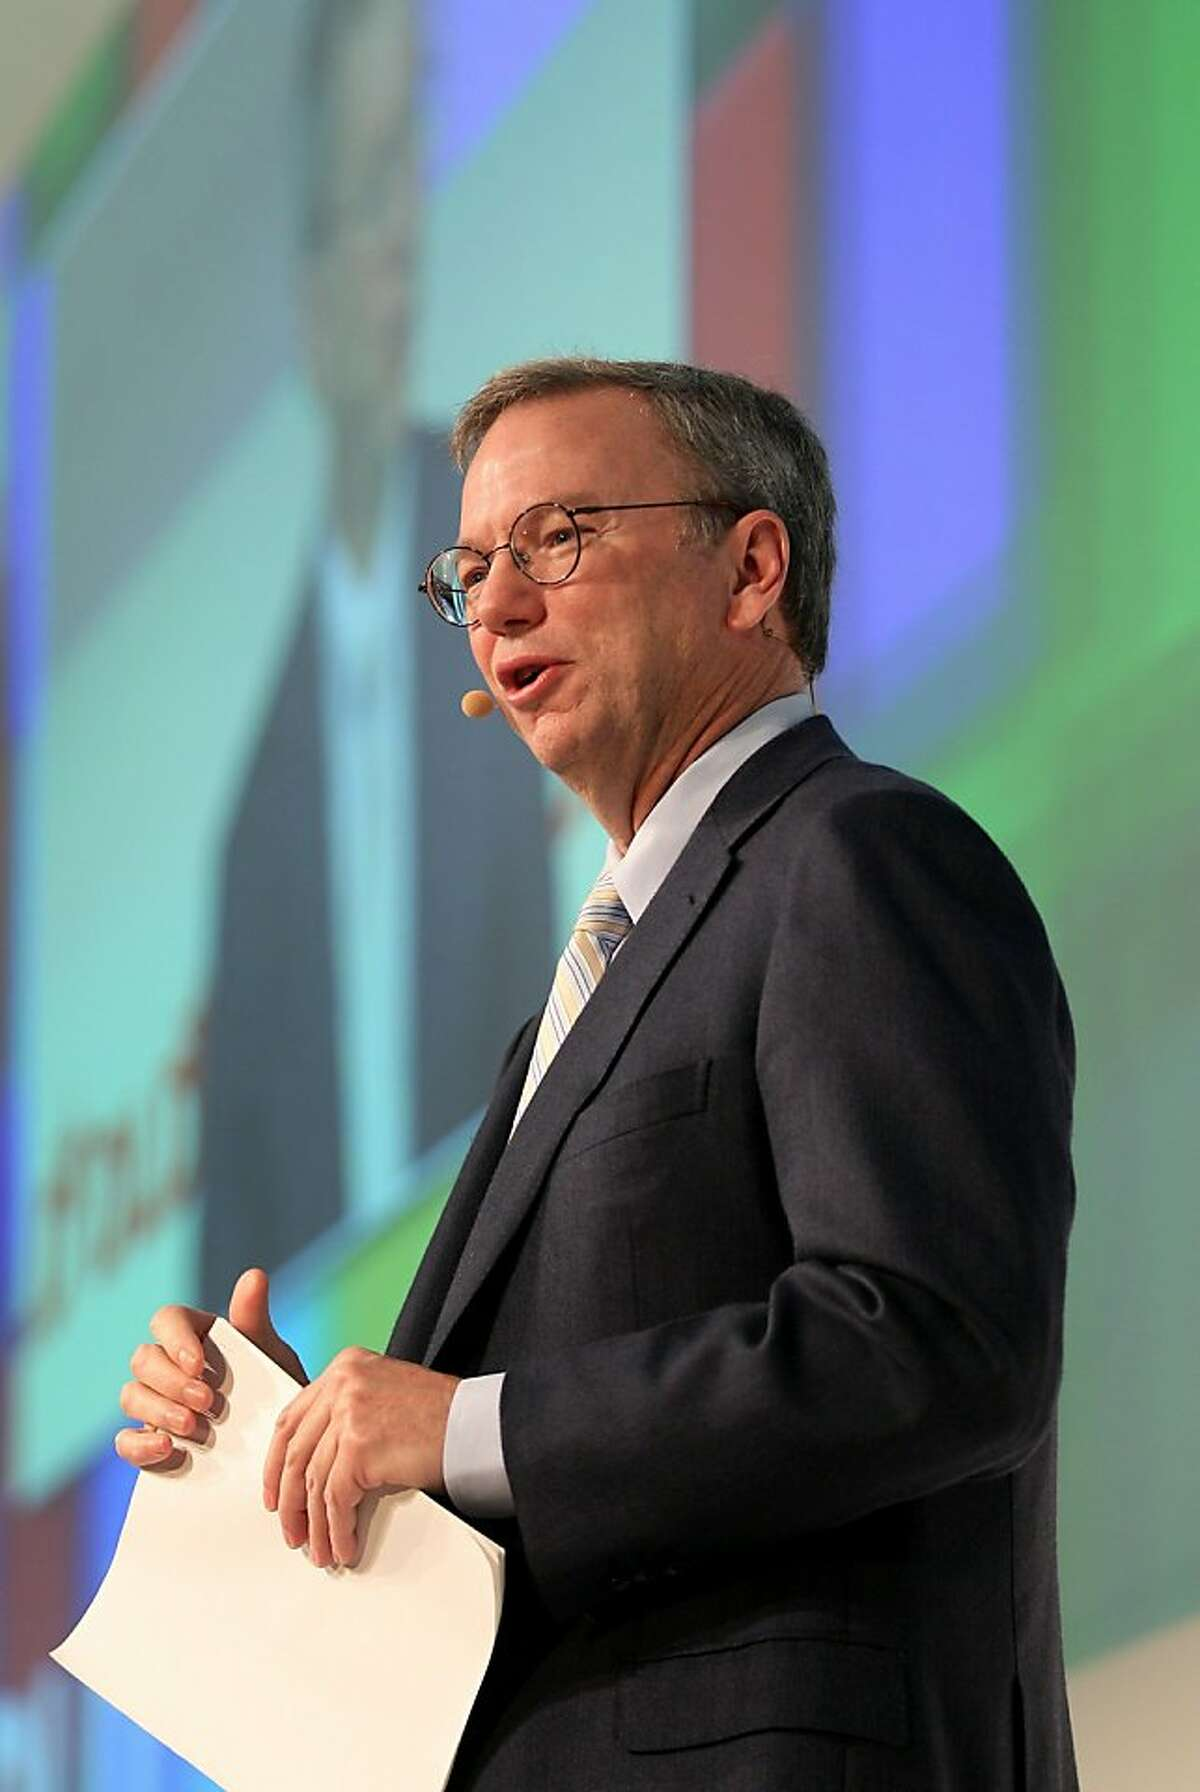 MUNICH, GERMANY - JANUARY 25: Google Chairman and CEO Eric Schmidt delivers the closing keynote speech at the Digital Life Design (DLD) conference at HVB Forum on January 25, 2011 in Munich, Germany. DLD brings together global leaders and creators from the digital world.